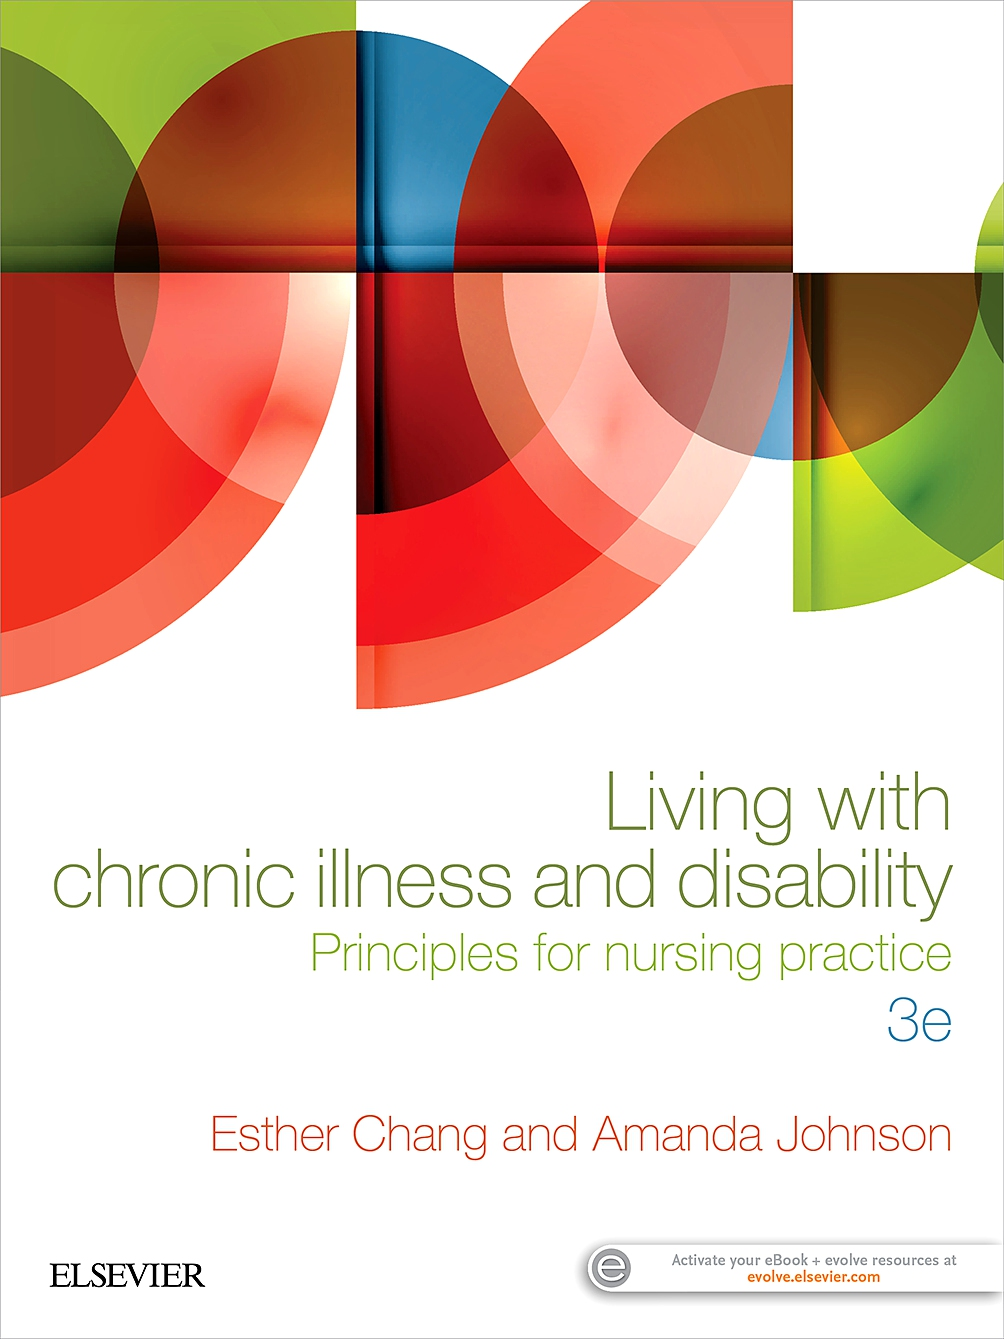 Evolve Resources for Living with Chronic Illness and Disability, 3rd Edition